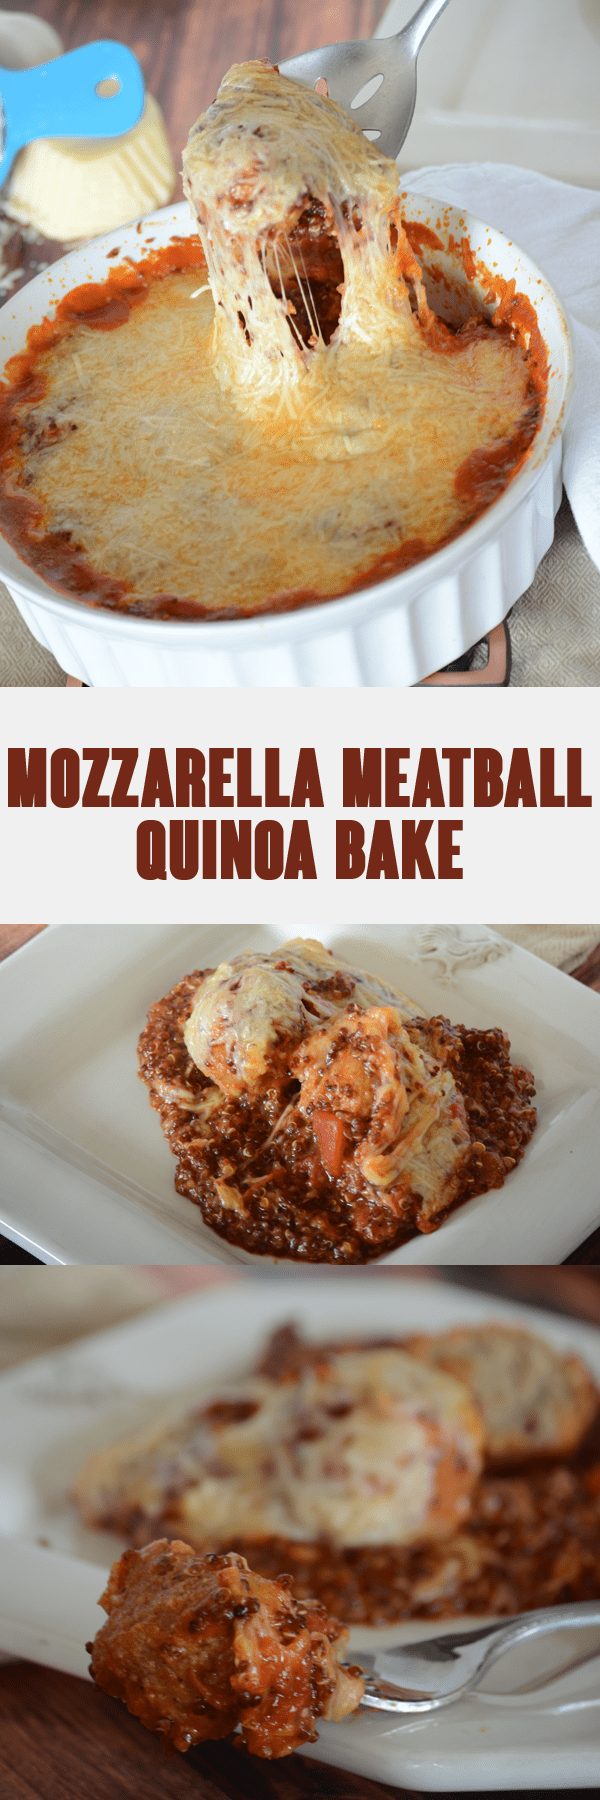 Easy and healthy recipe alert!  This mozarella meatball quinoa bake is so easy to put together and full of flavor that no one will belive its good for you!